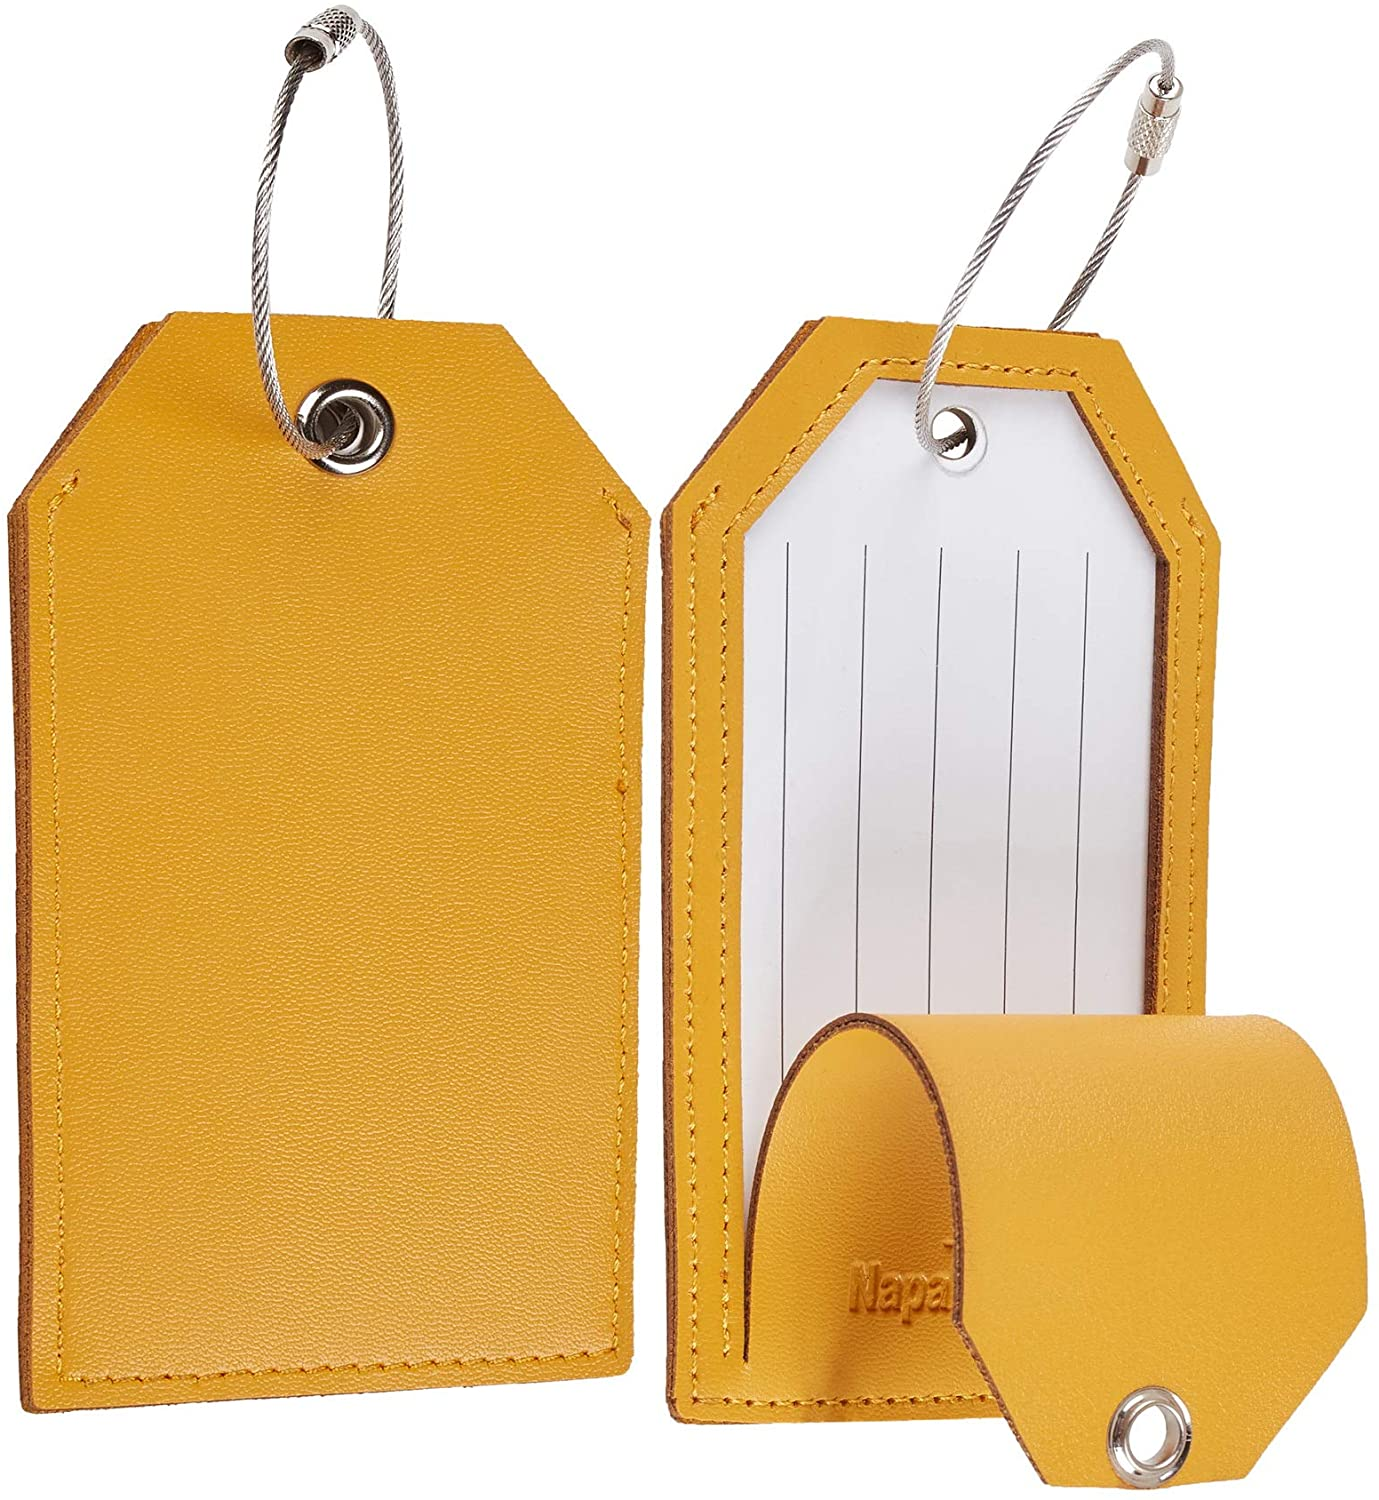 Toughergun Leather Instrument Baggage Bag Luggage Tags with Privacy Cover 2 Pcs Set (Yellow)